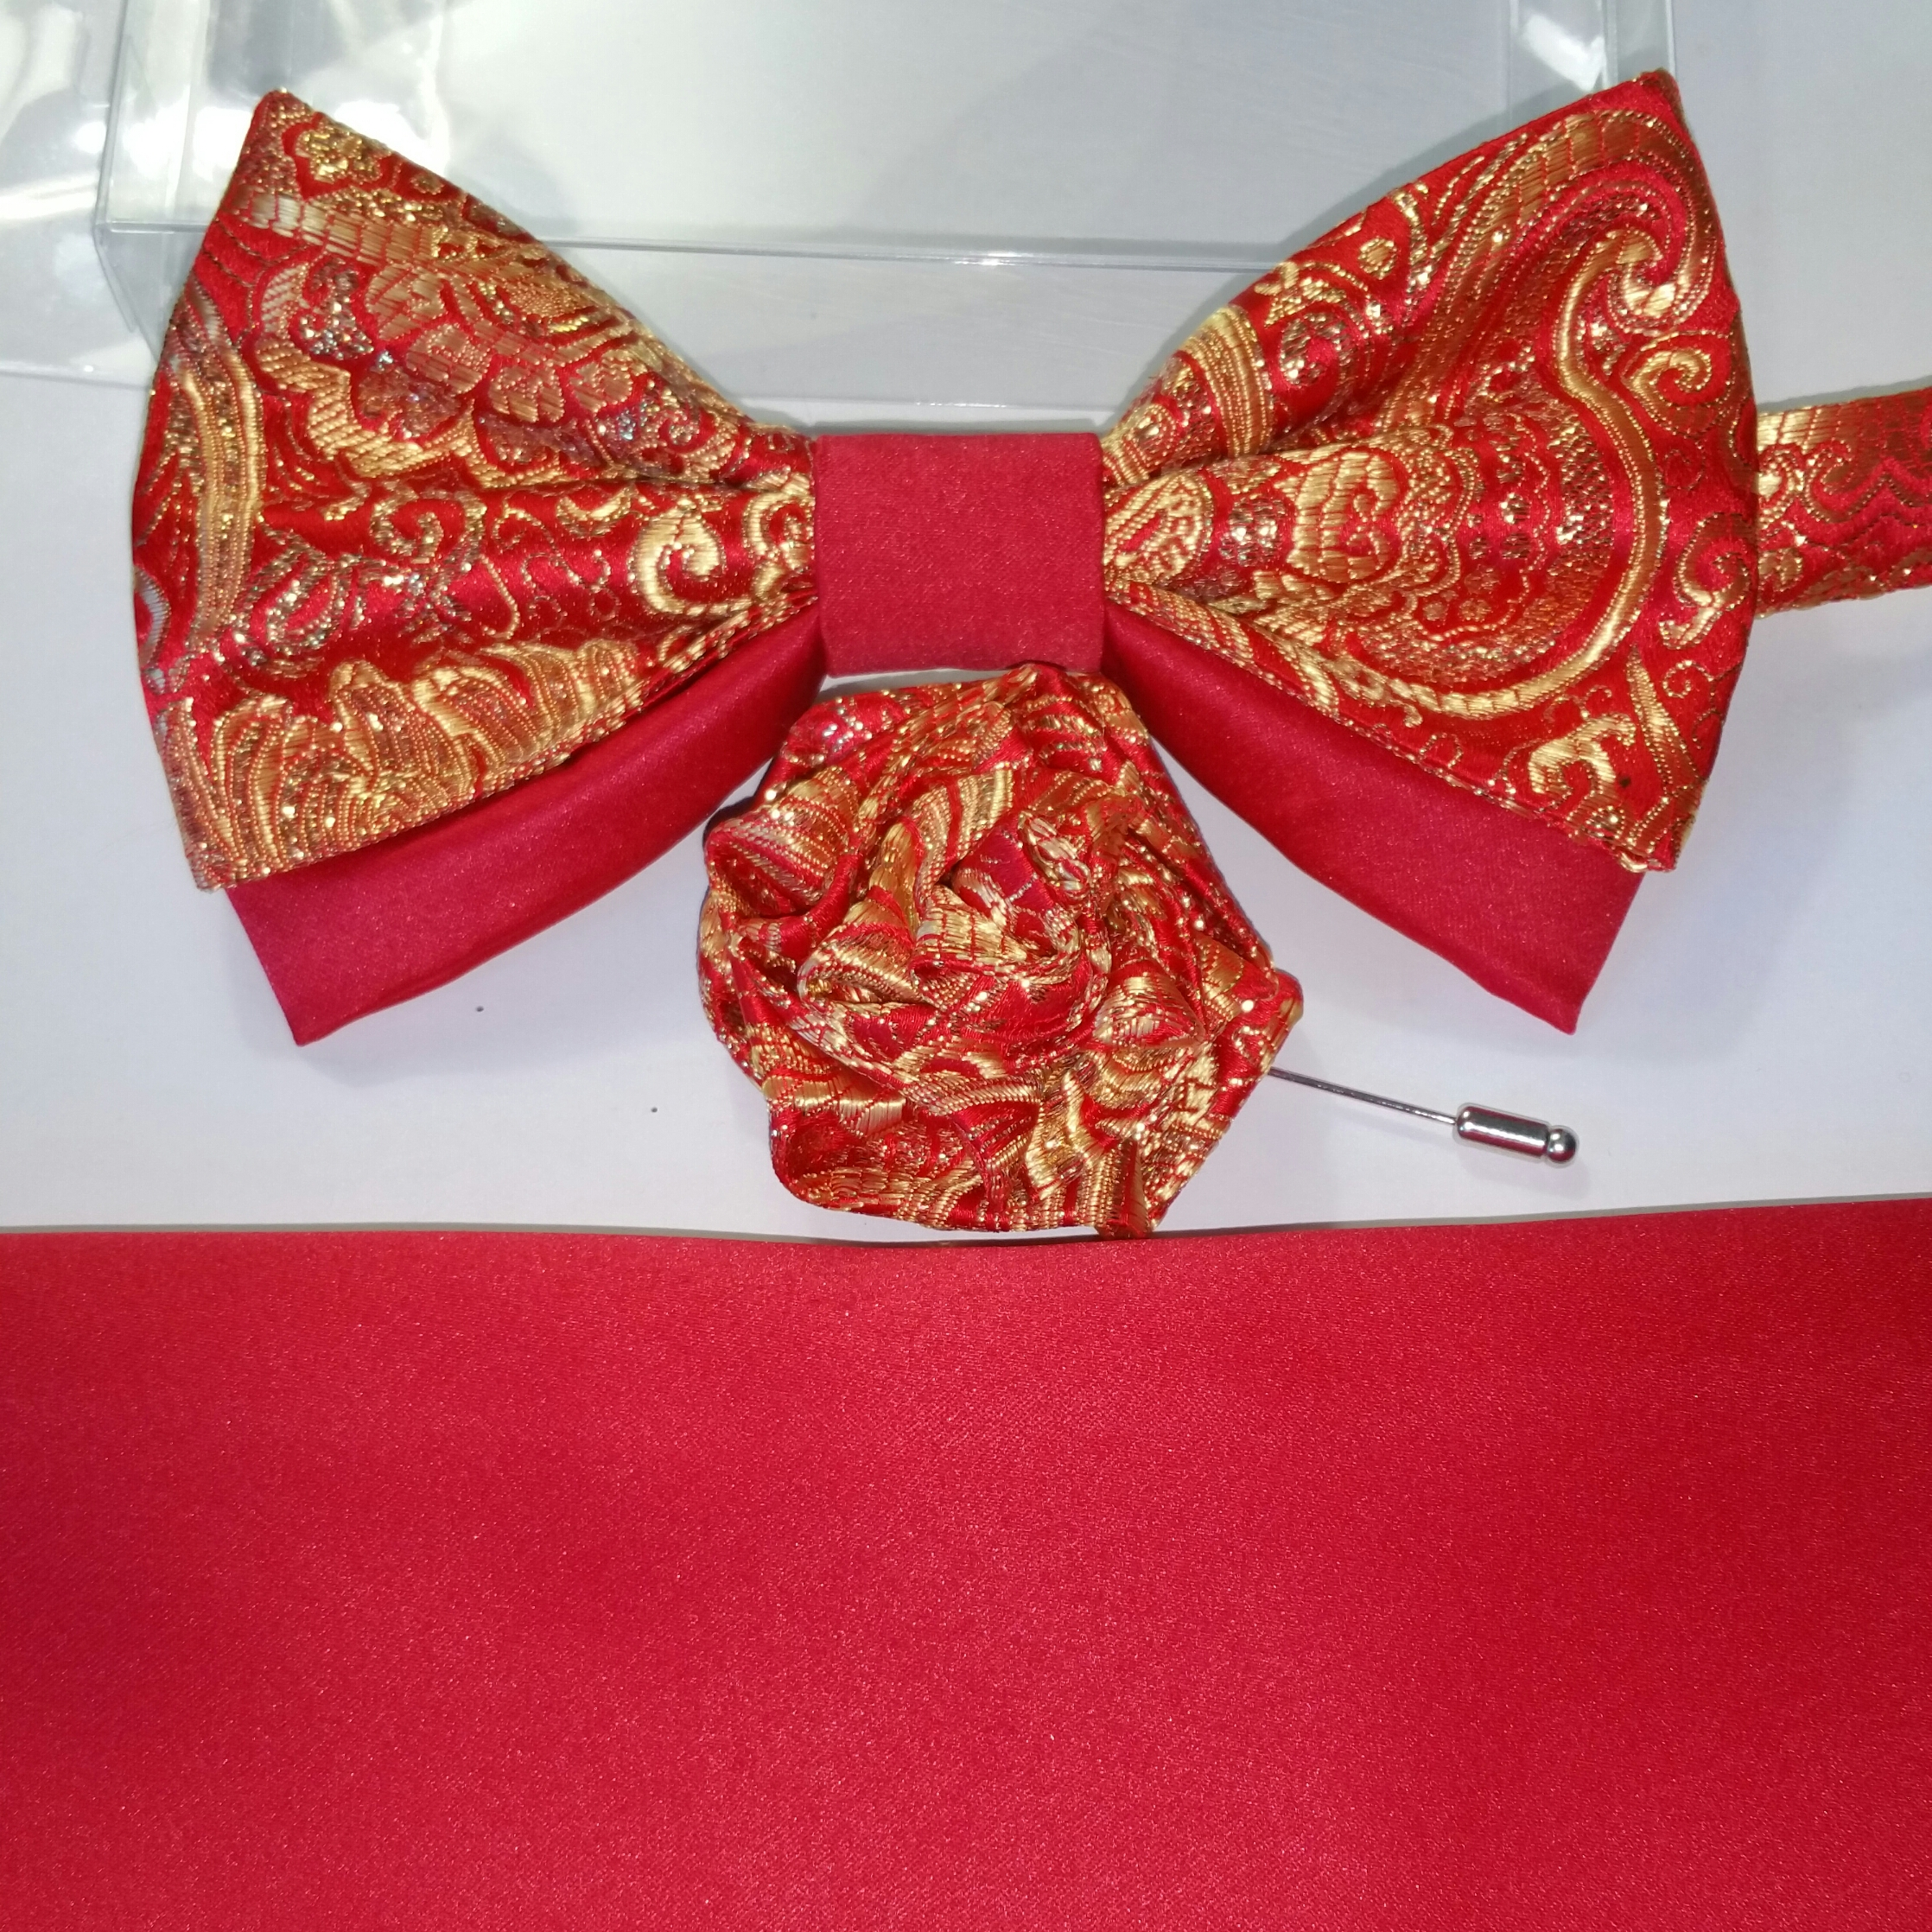 RED MATTE SATIN WITH RED GOLD BROCADE SATIN 2